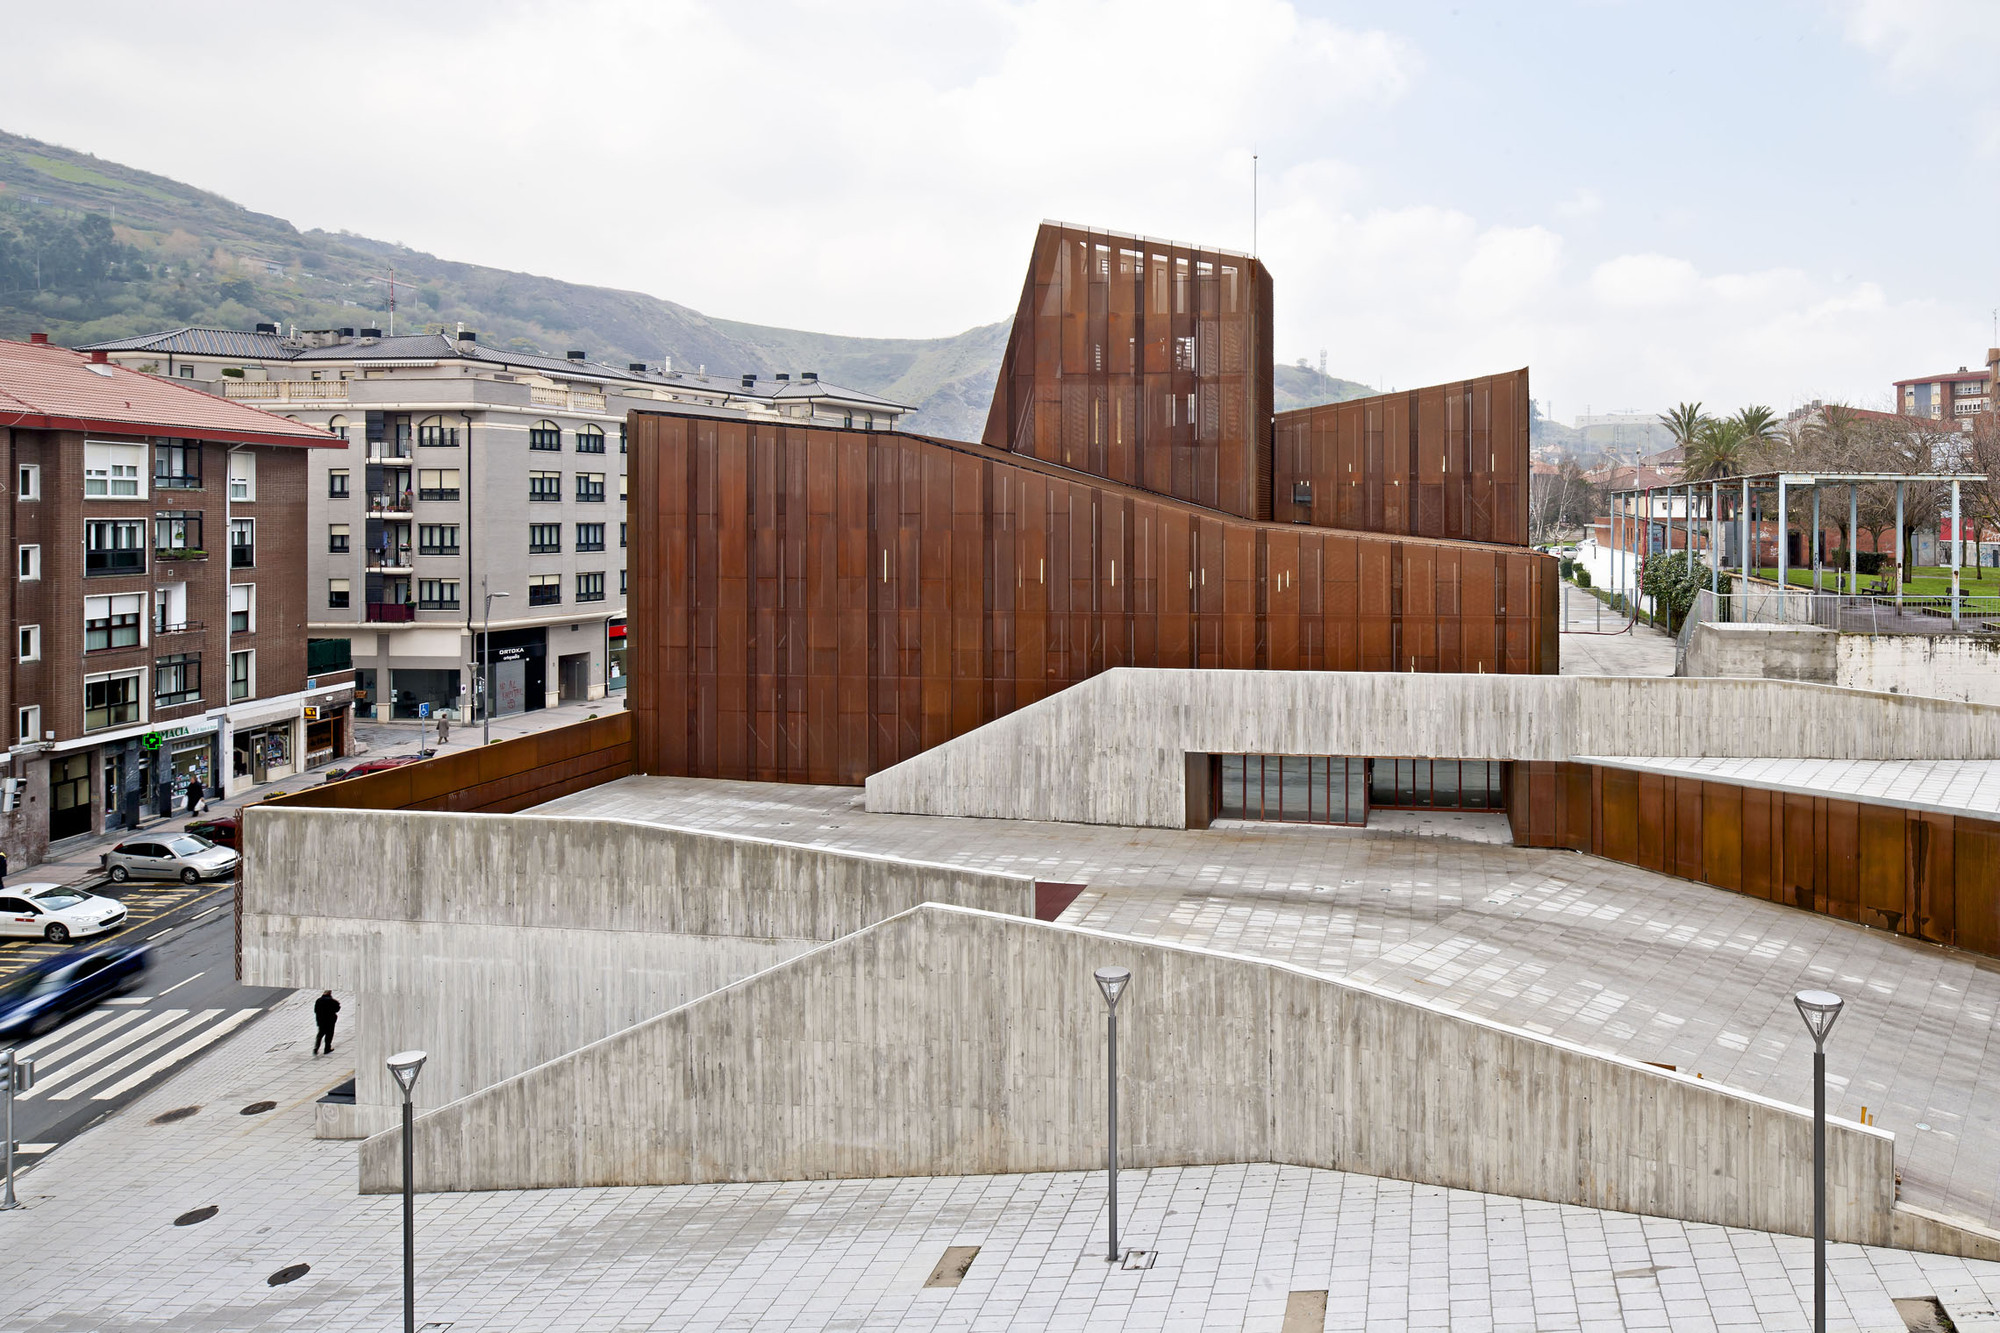 Aco corten tag archdaily brasil for Archdaily com